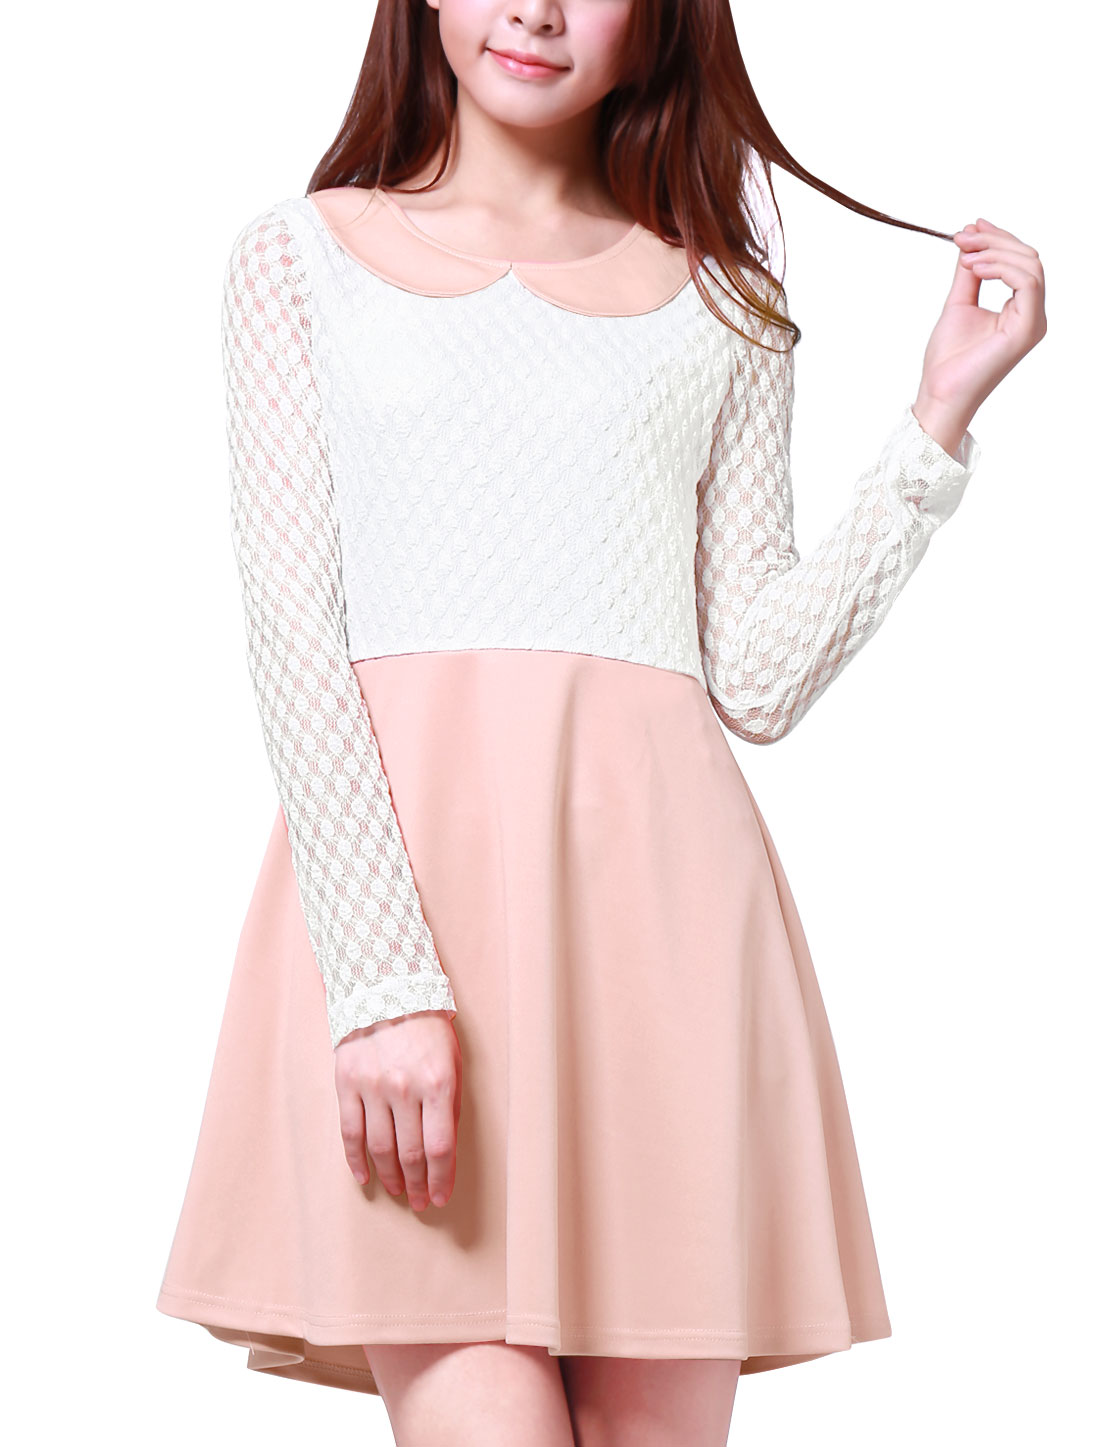 6036 Ladies Slipover See Through Dress Light Pink White L (US 14)